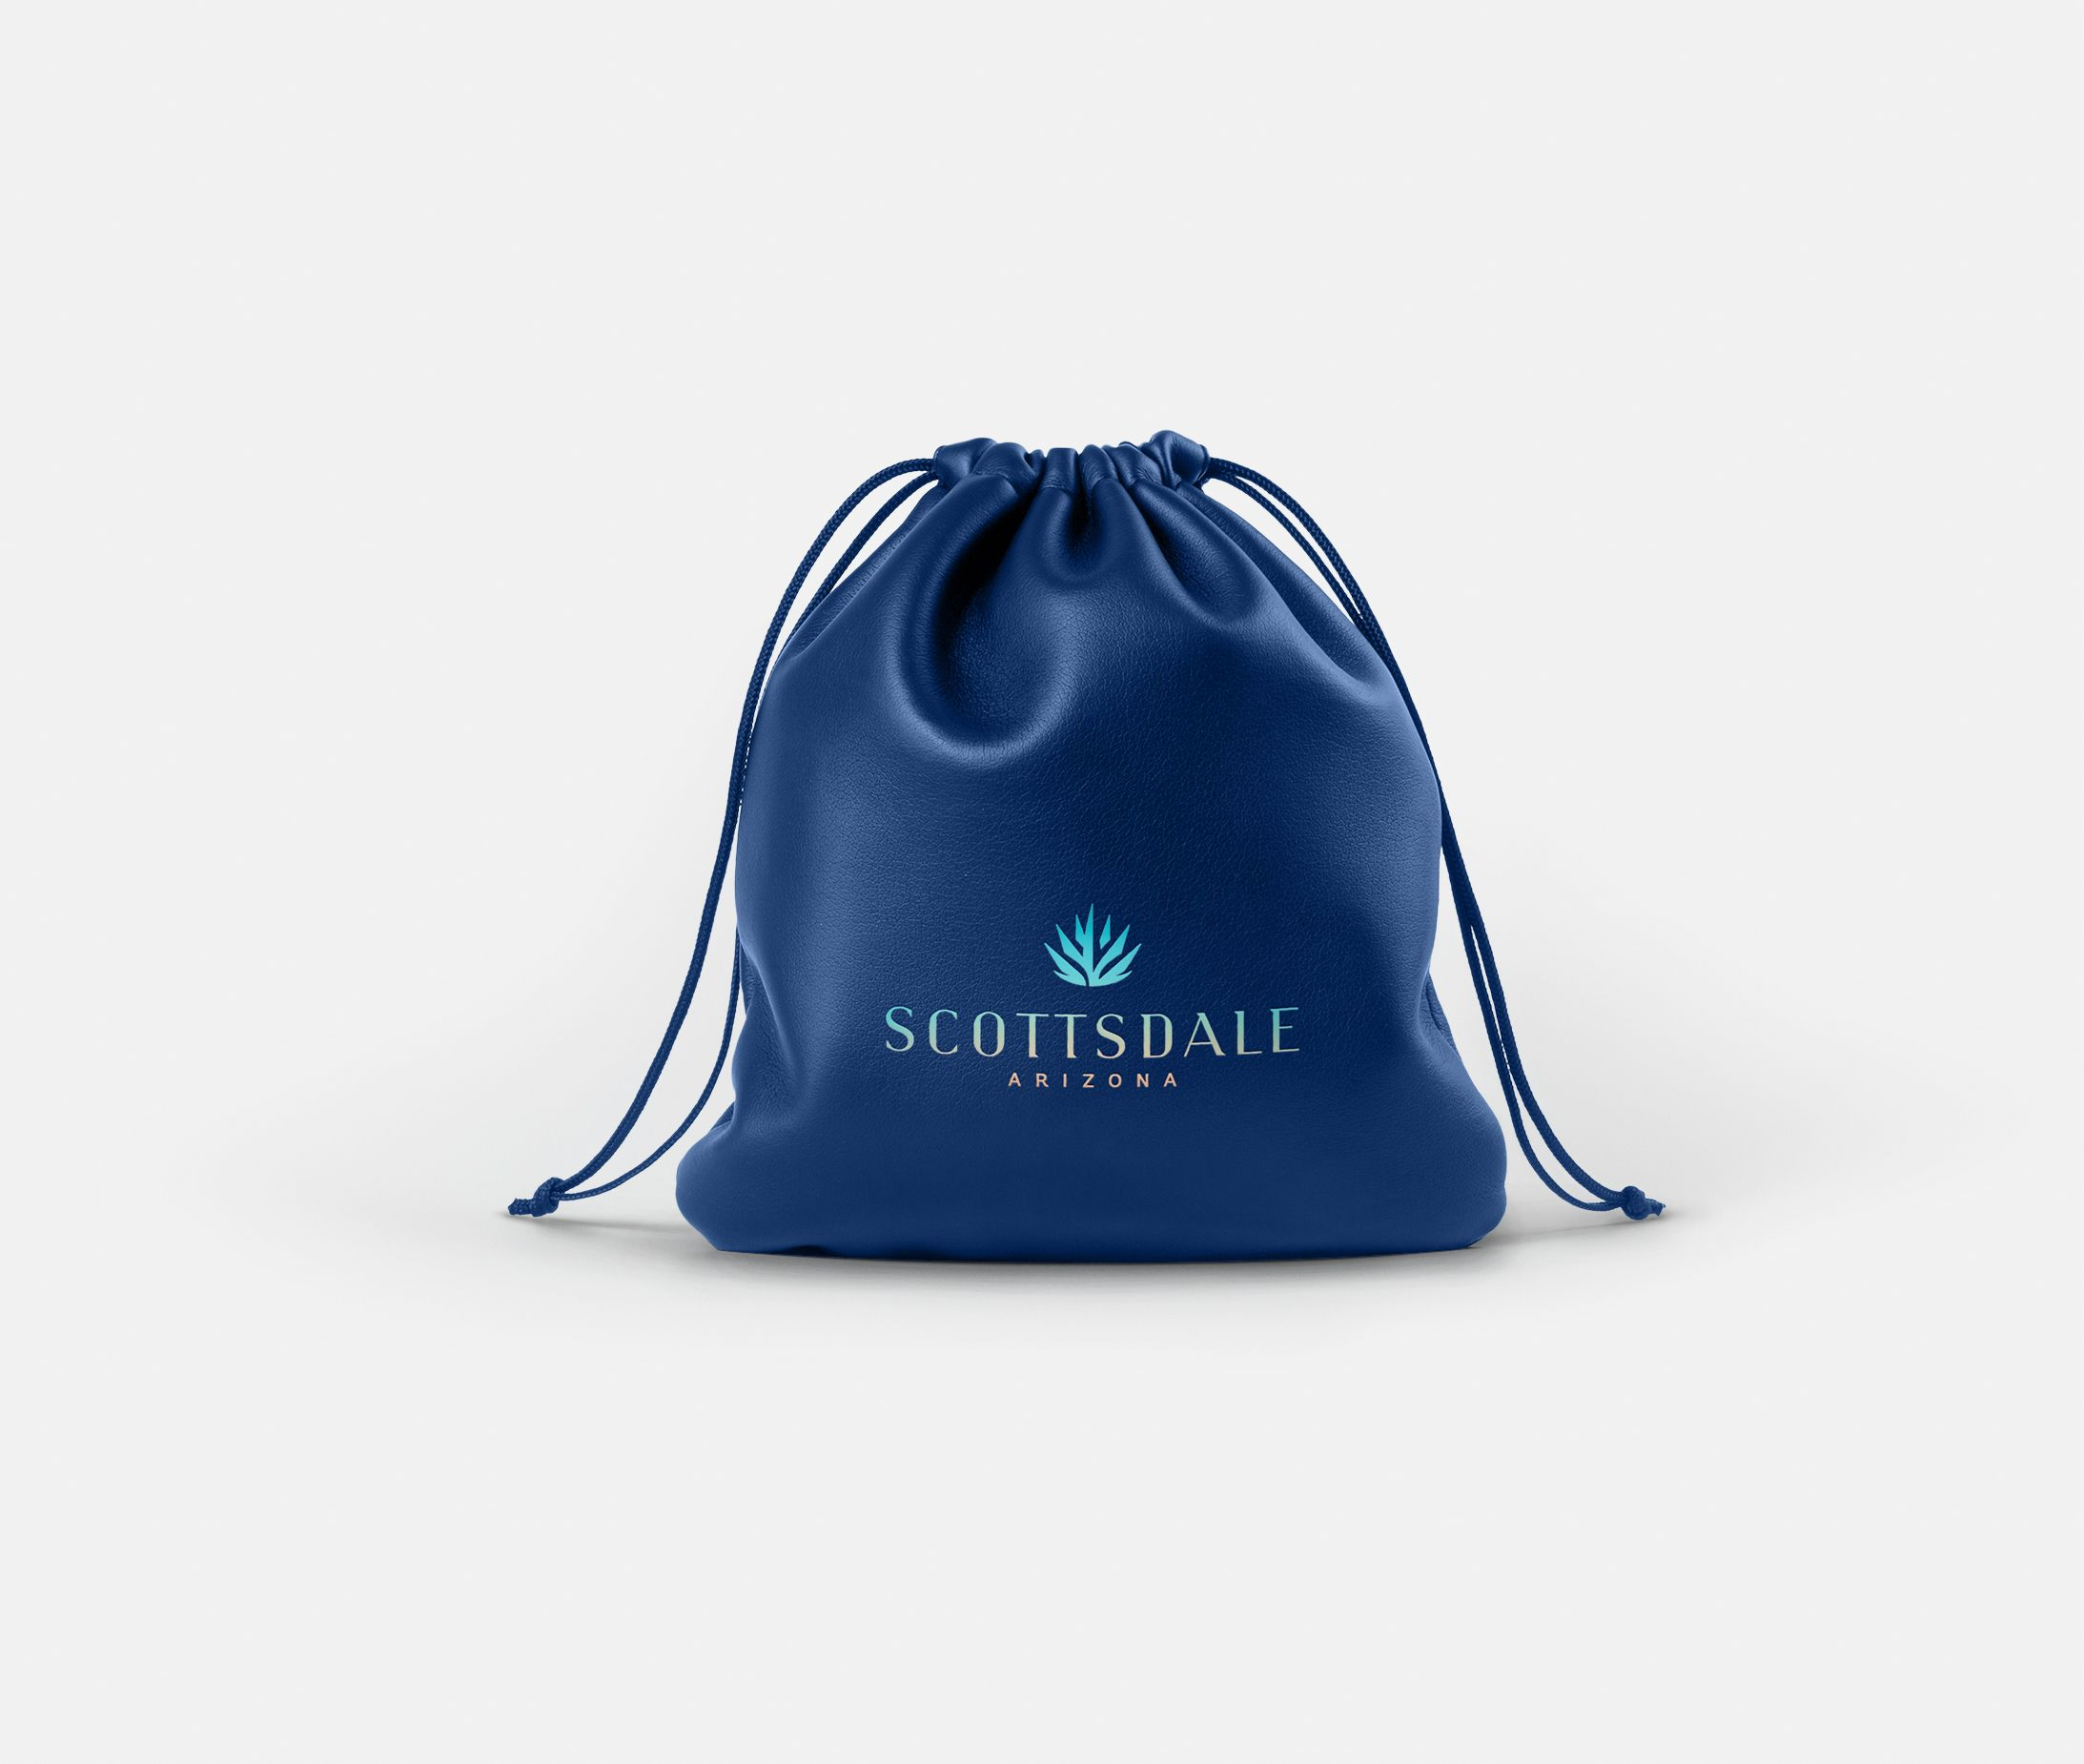 Blue Scottsdale Bag